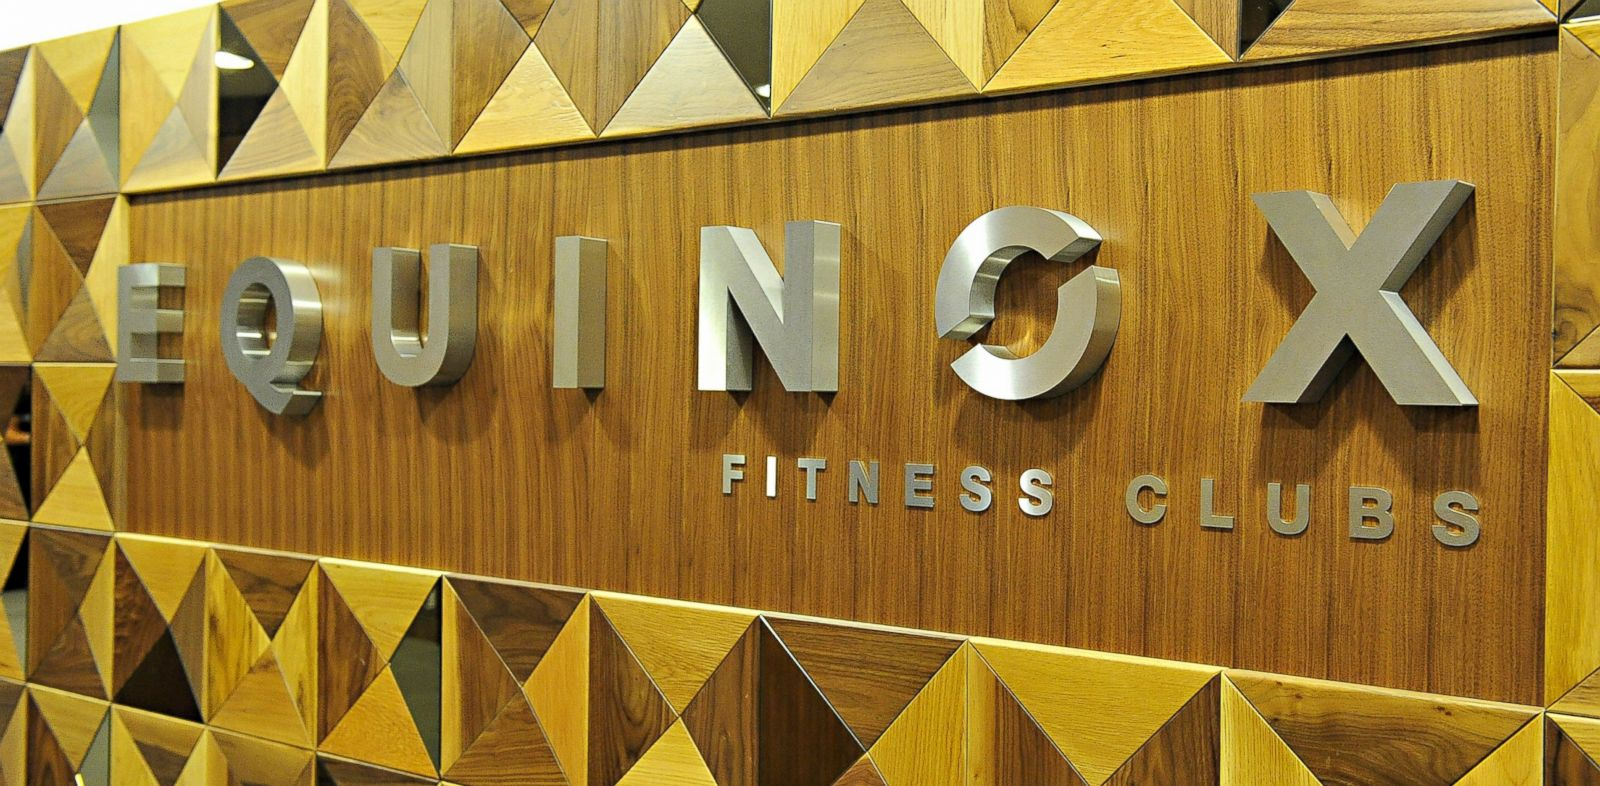 PHOTO: A general view of Equinox at their first UK location, Oct. 23, 2012, in London.